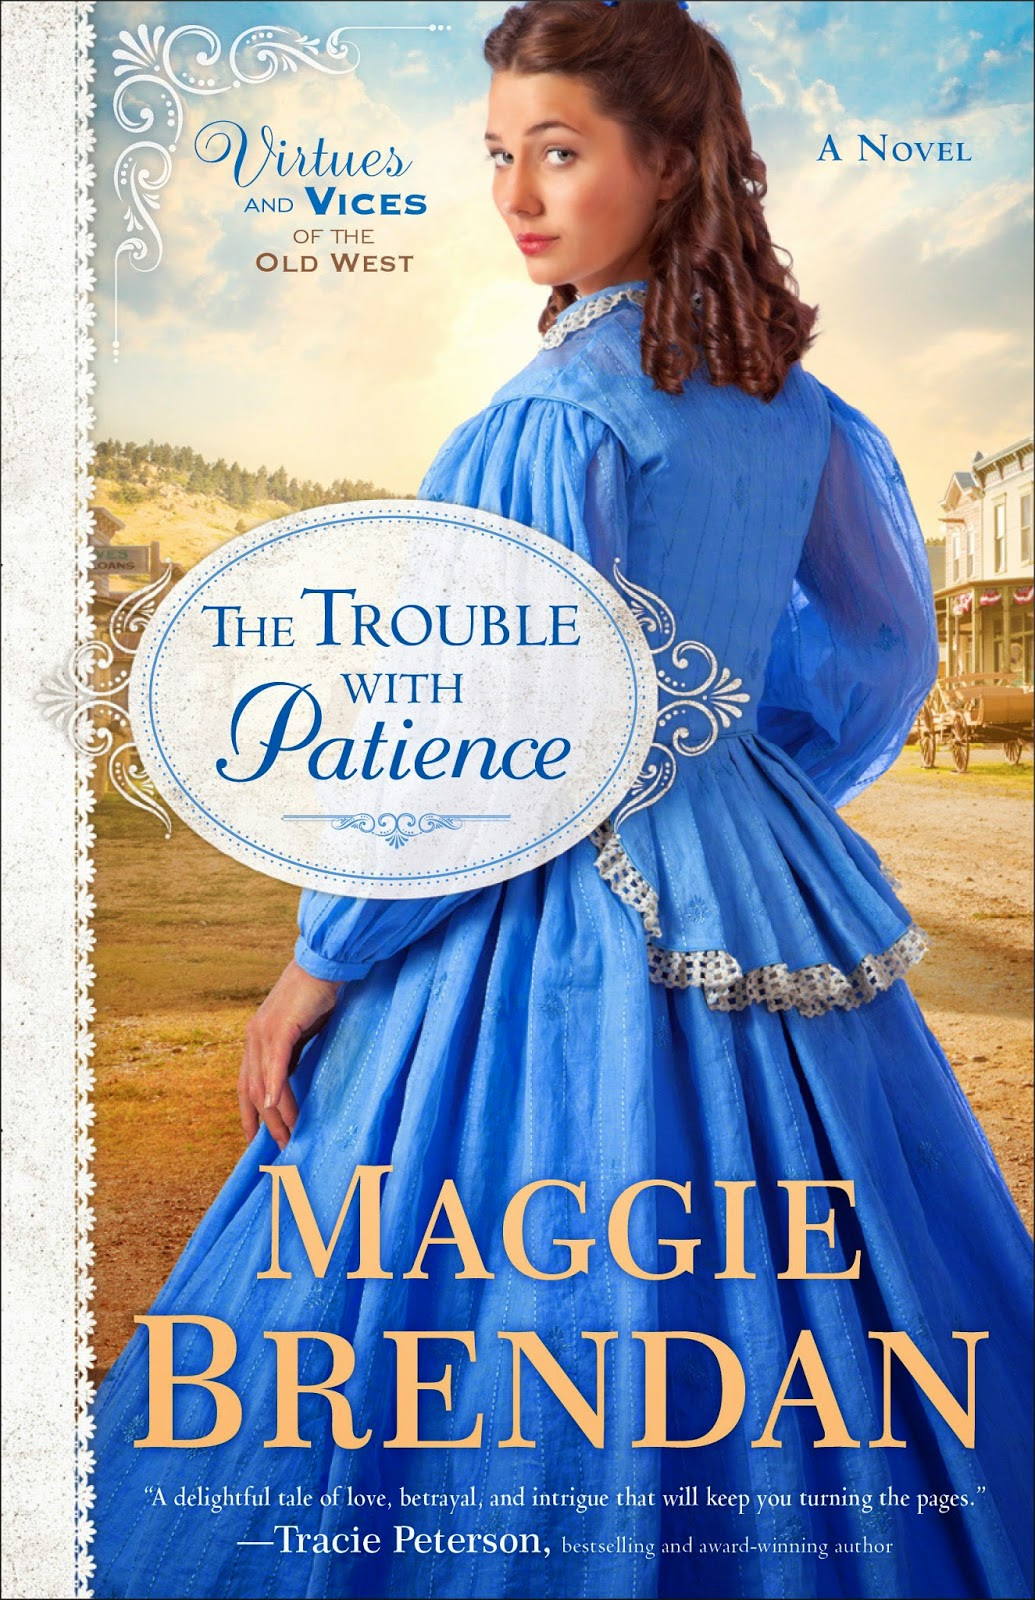 The Trouble With Patience (Virtues and Vices of the Old West, Book 1) by Maggie Brendan